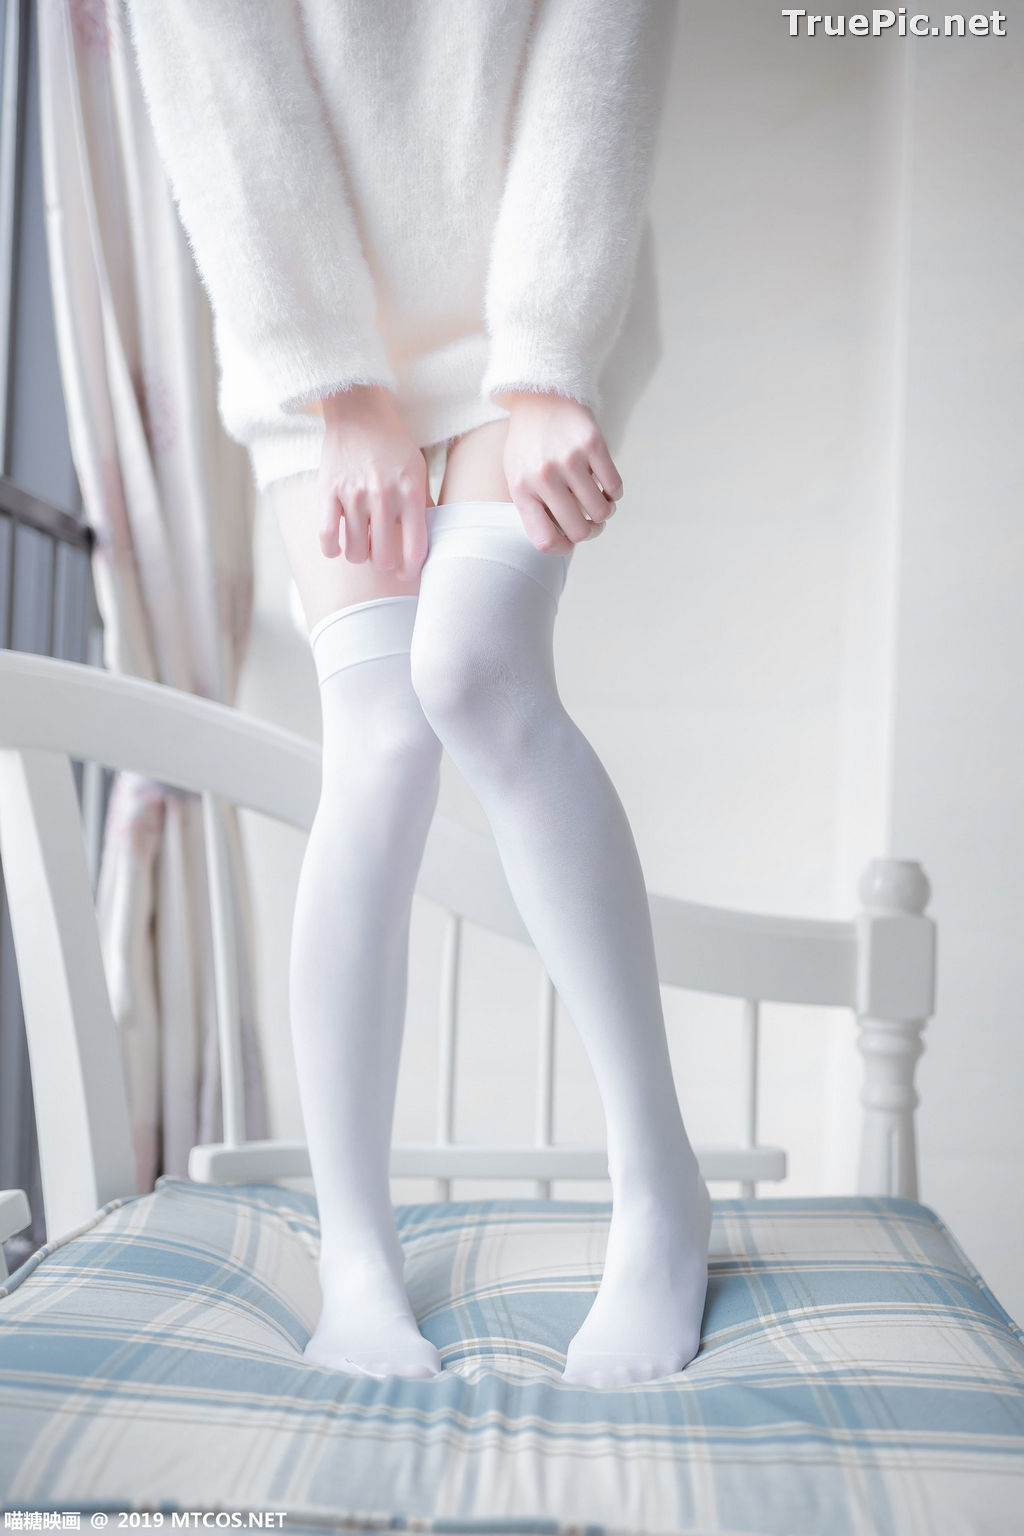 Image [MTCos] 喵糖映画 Vol.027 – Chinese Cute Model – Beautiful White Cat - TruePic.net - Picture-3